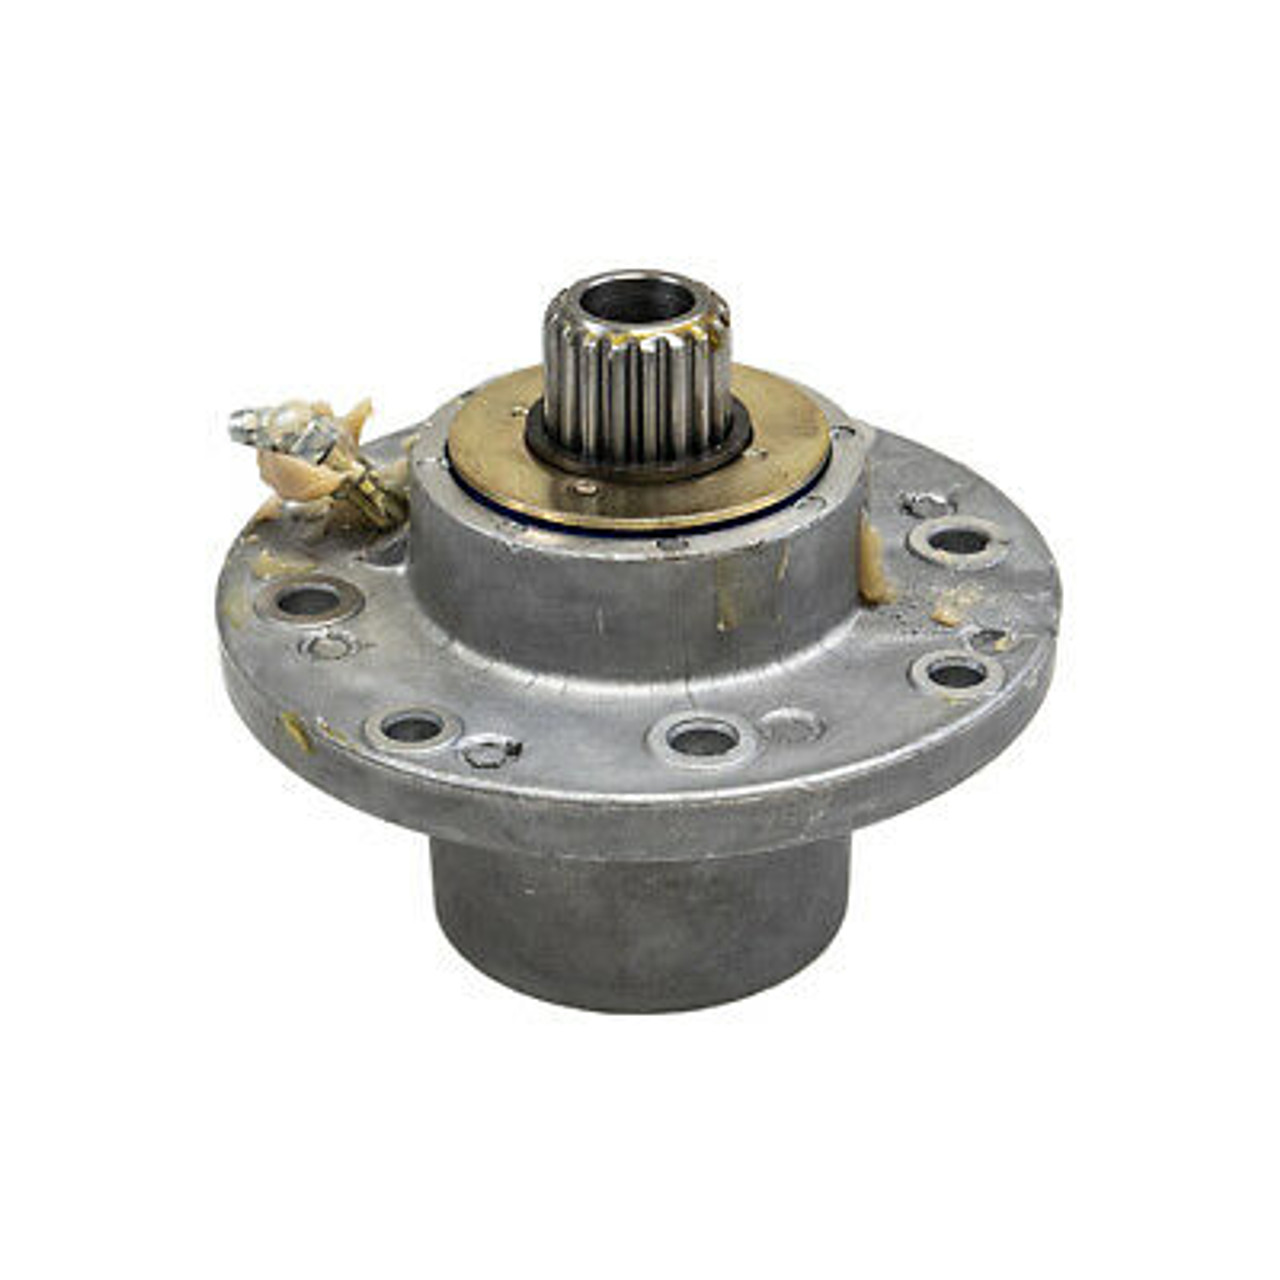 CUB CADET 918-05132 SPINDLE ASSEMBLY